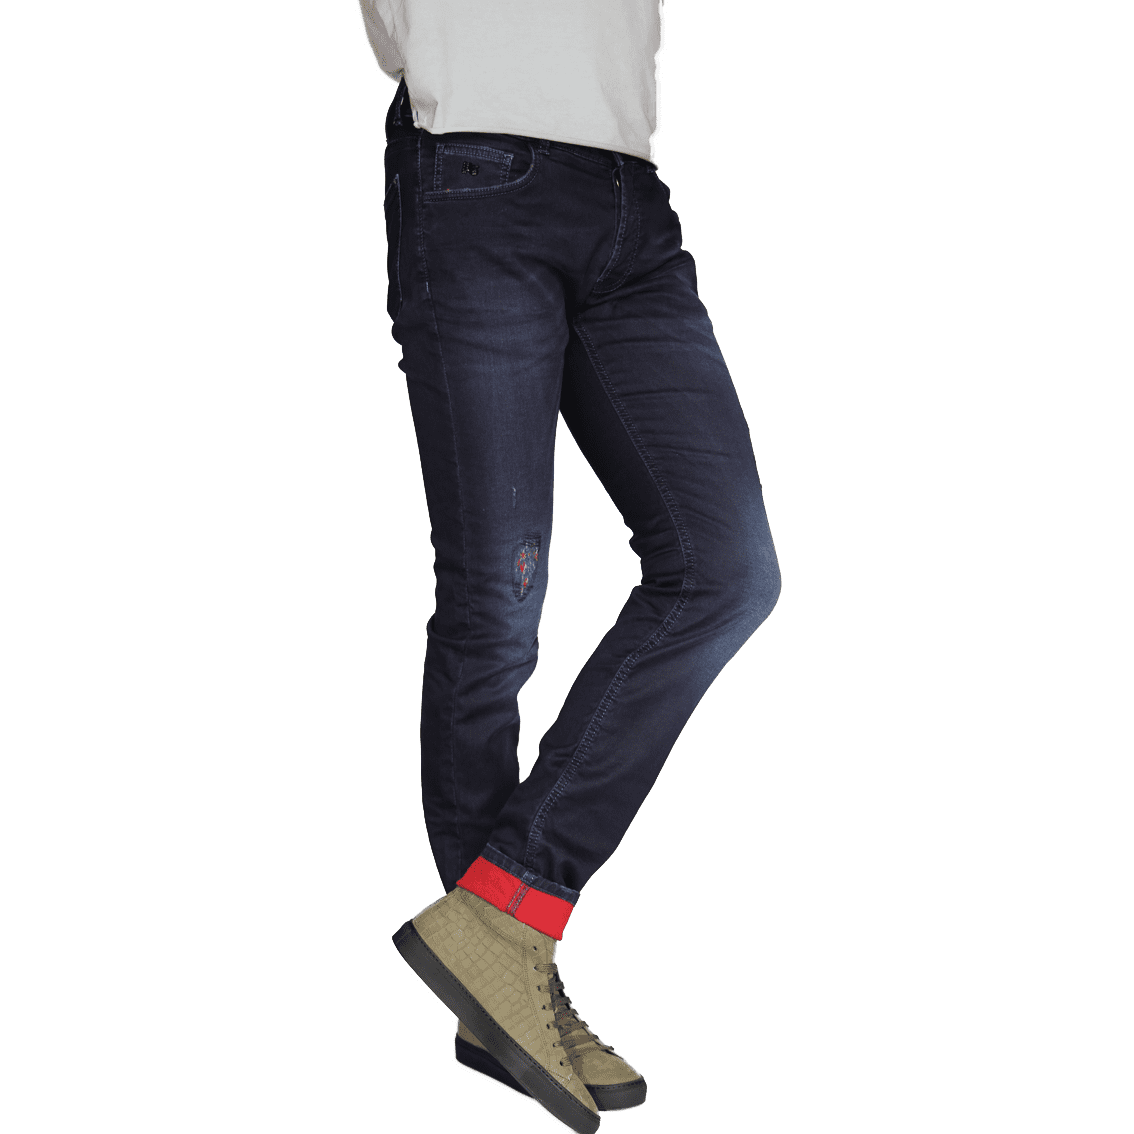 Cabinero Stiles Berlin PG Enjoy Jeans, Herrenhosen, made in Italy AW17-18 denim Blue-Red 3